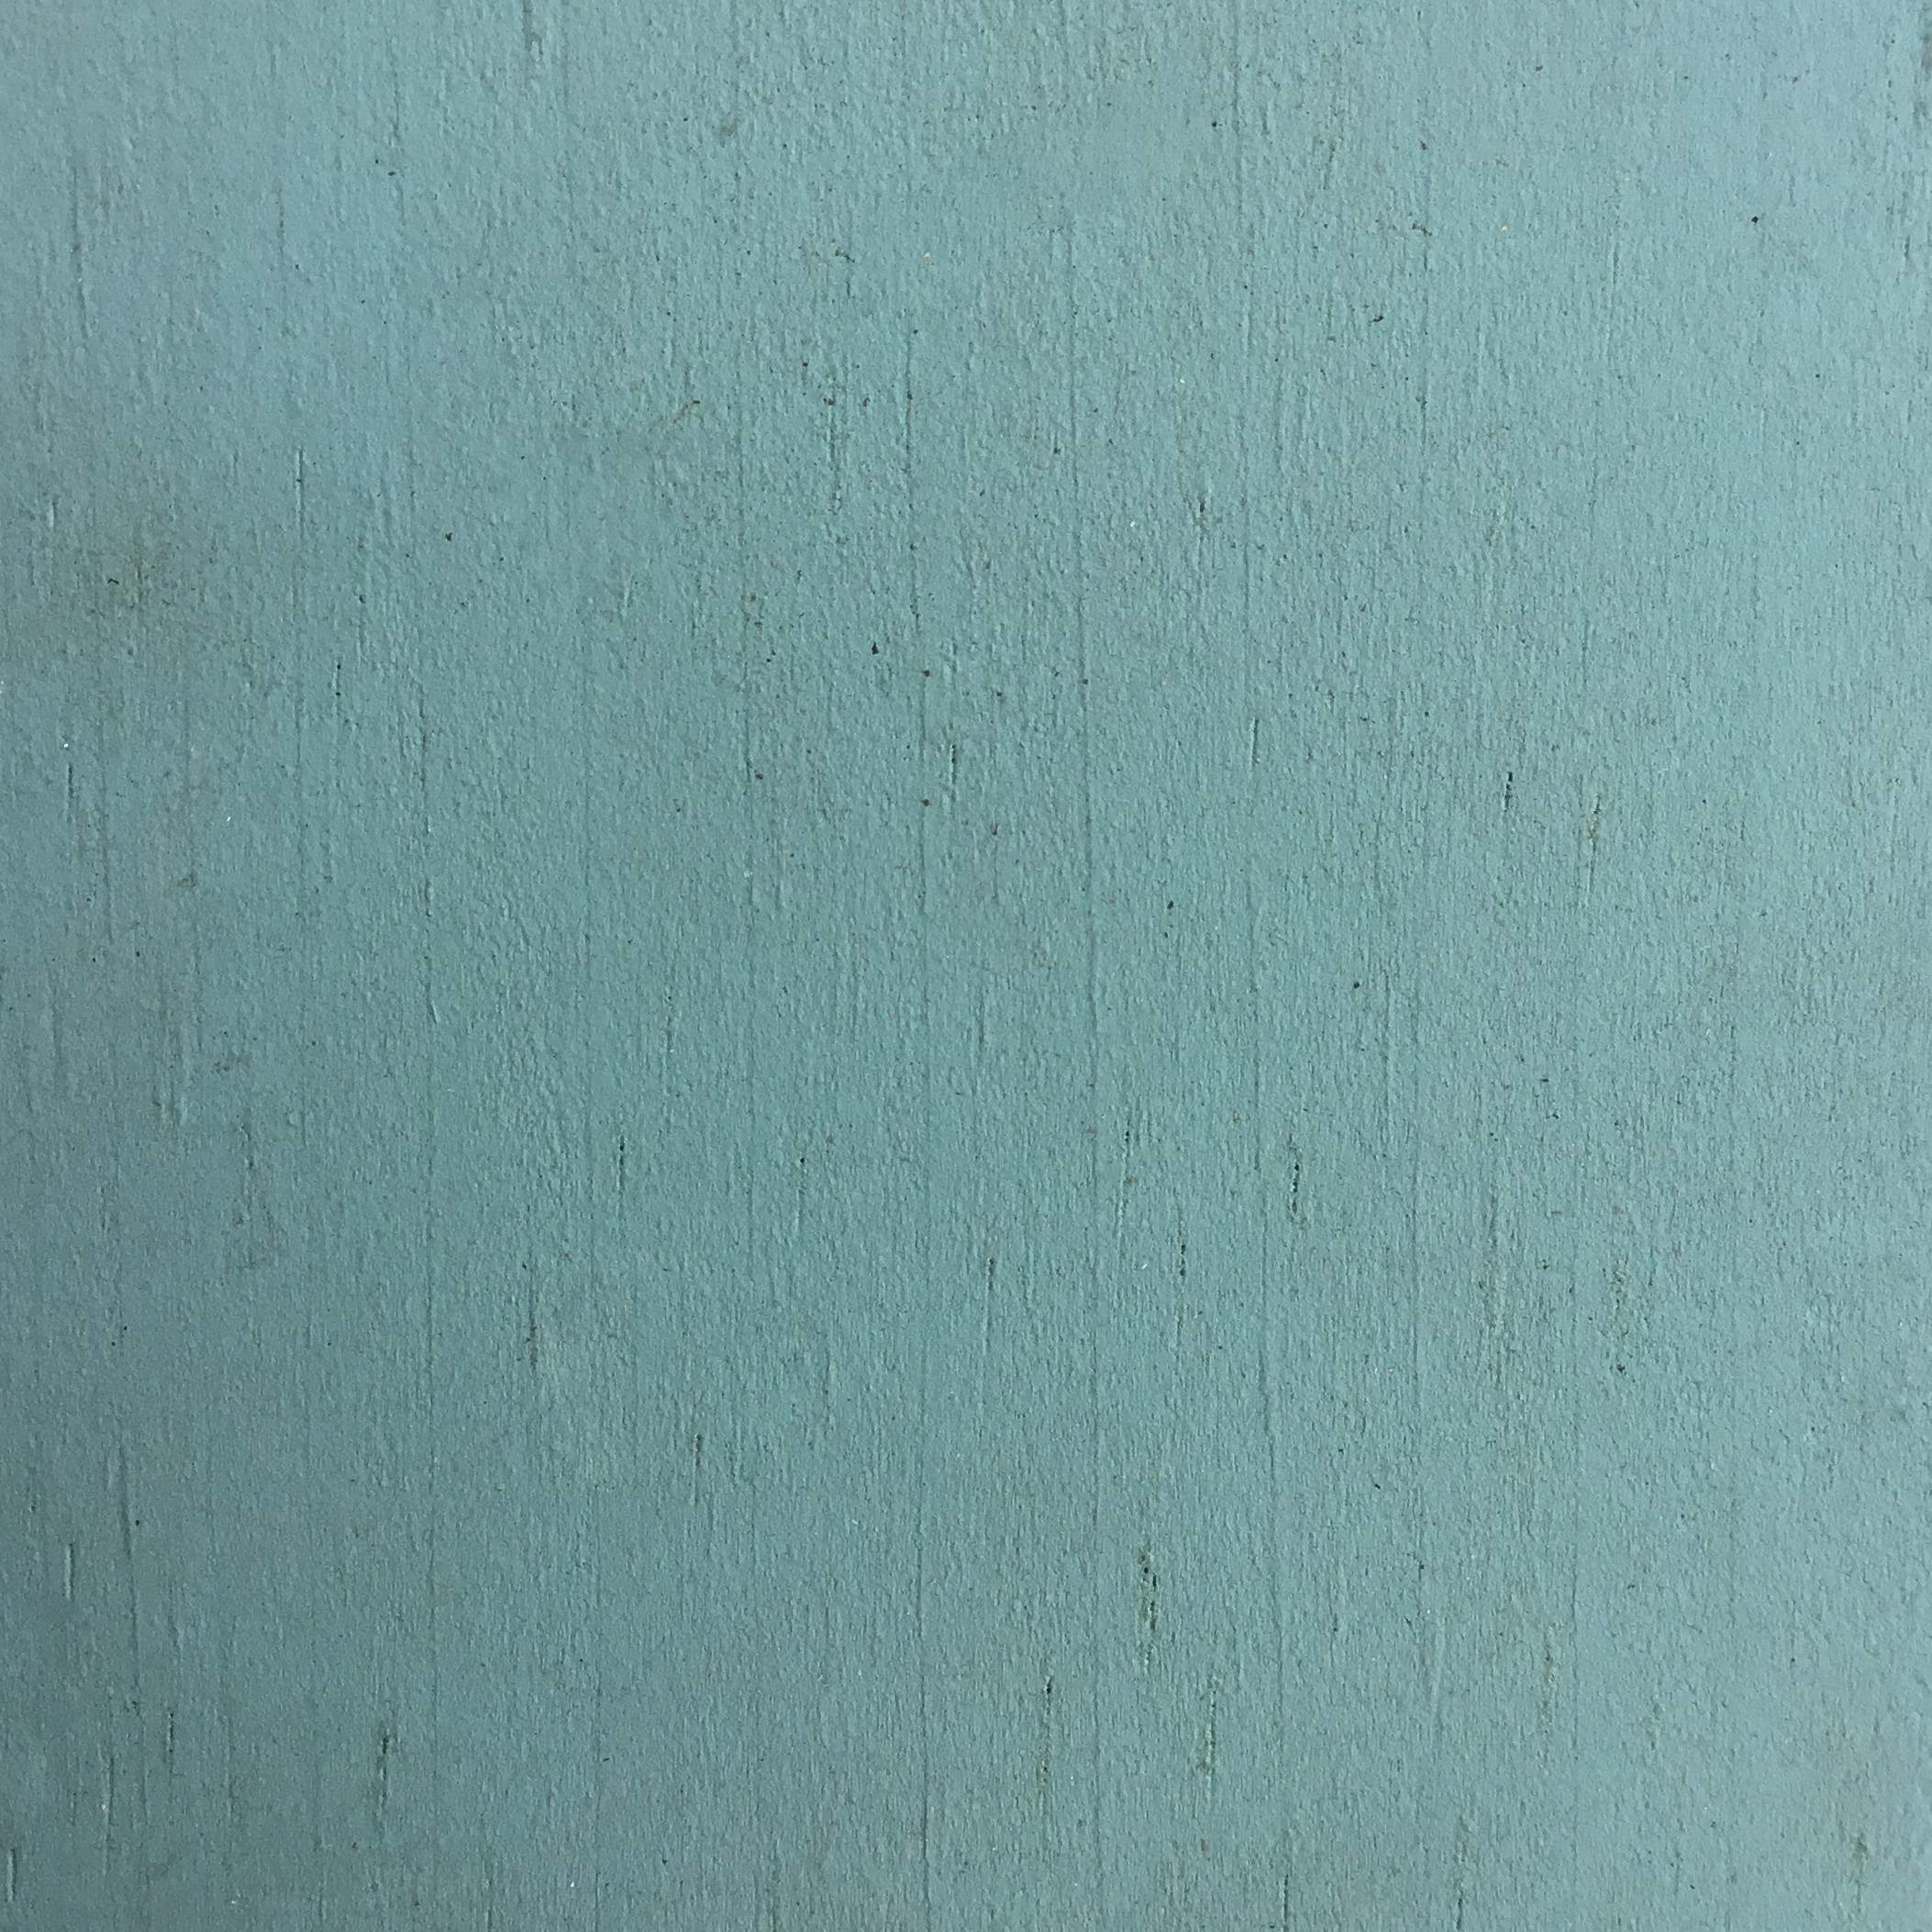 Sea Foam Green Paint